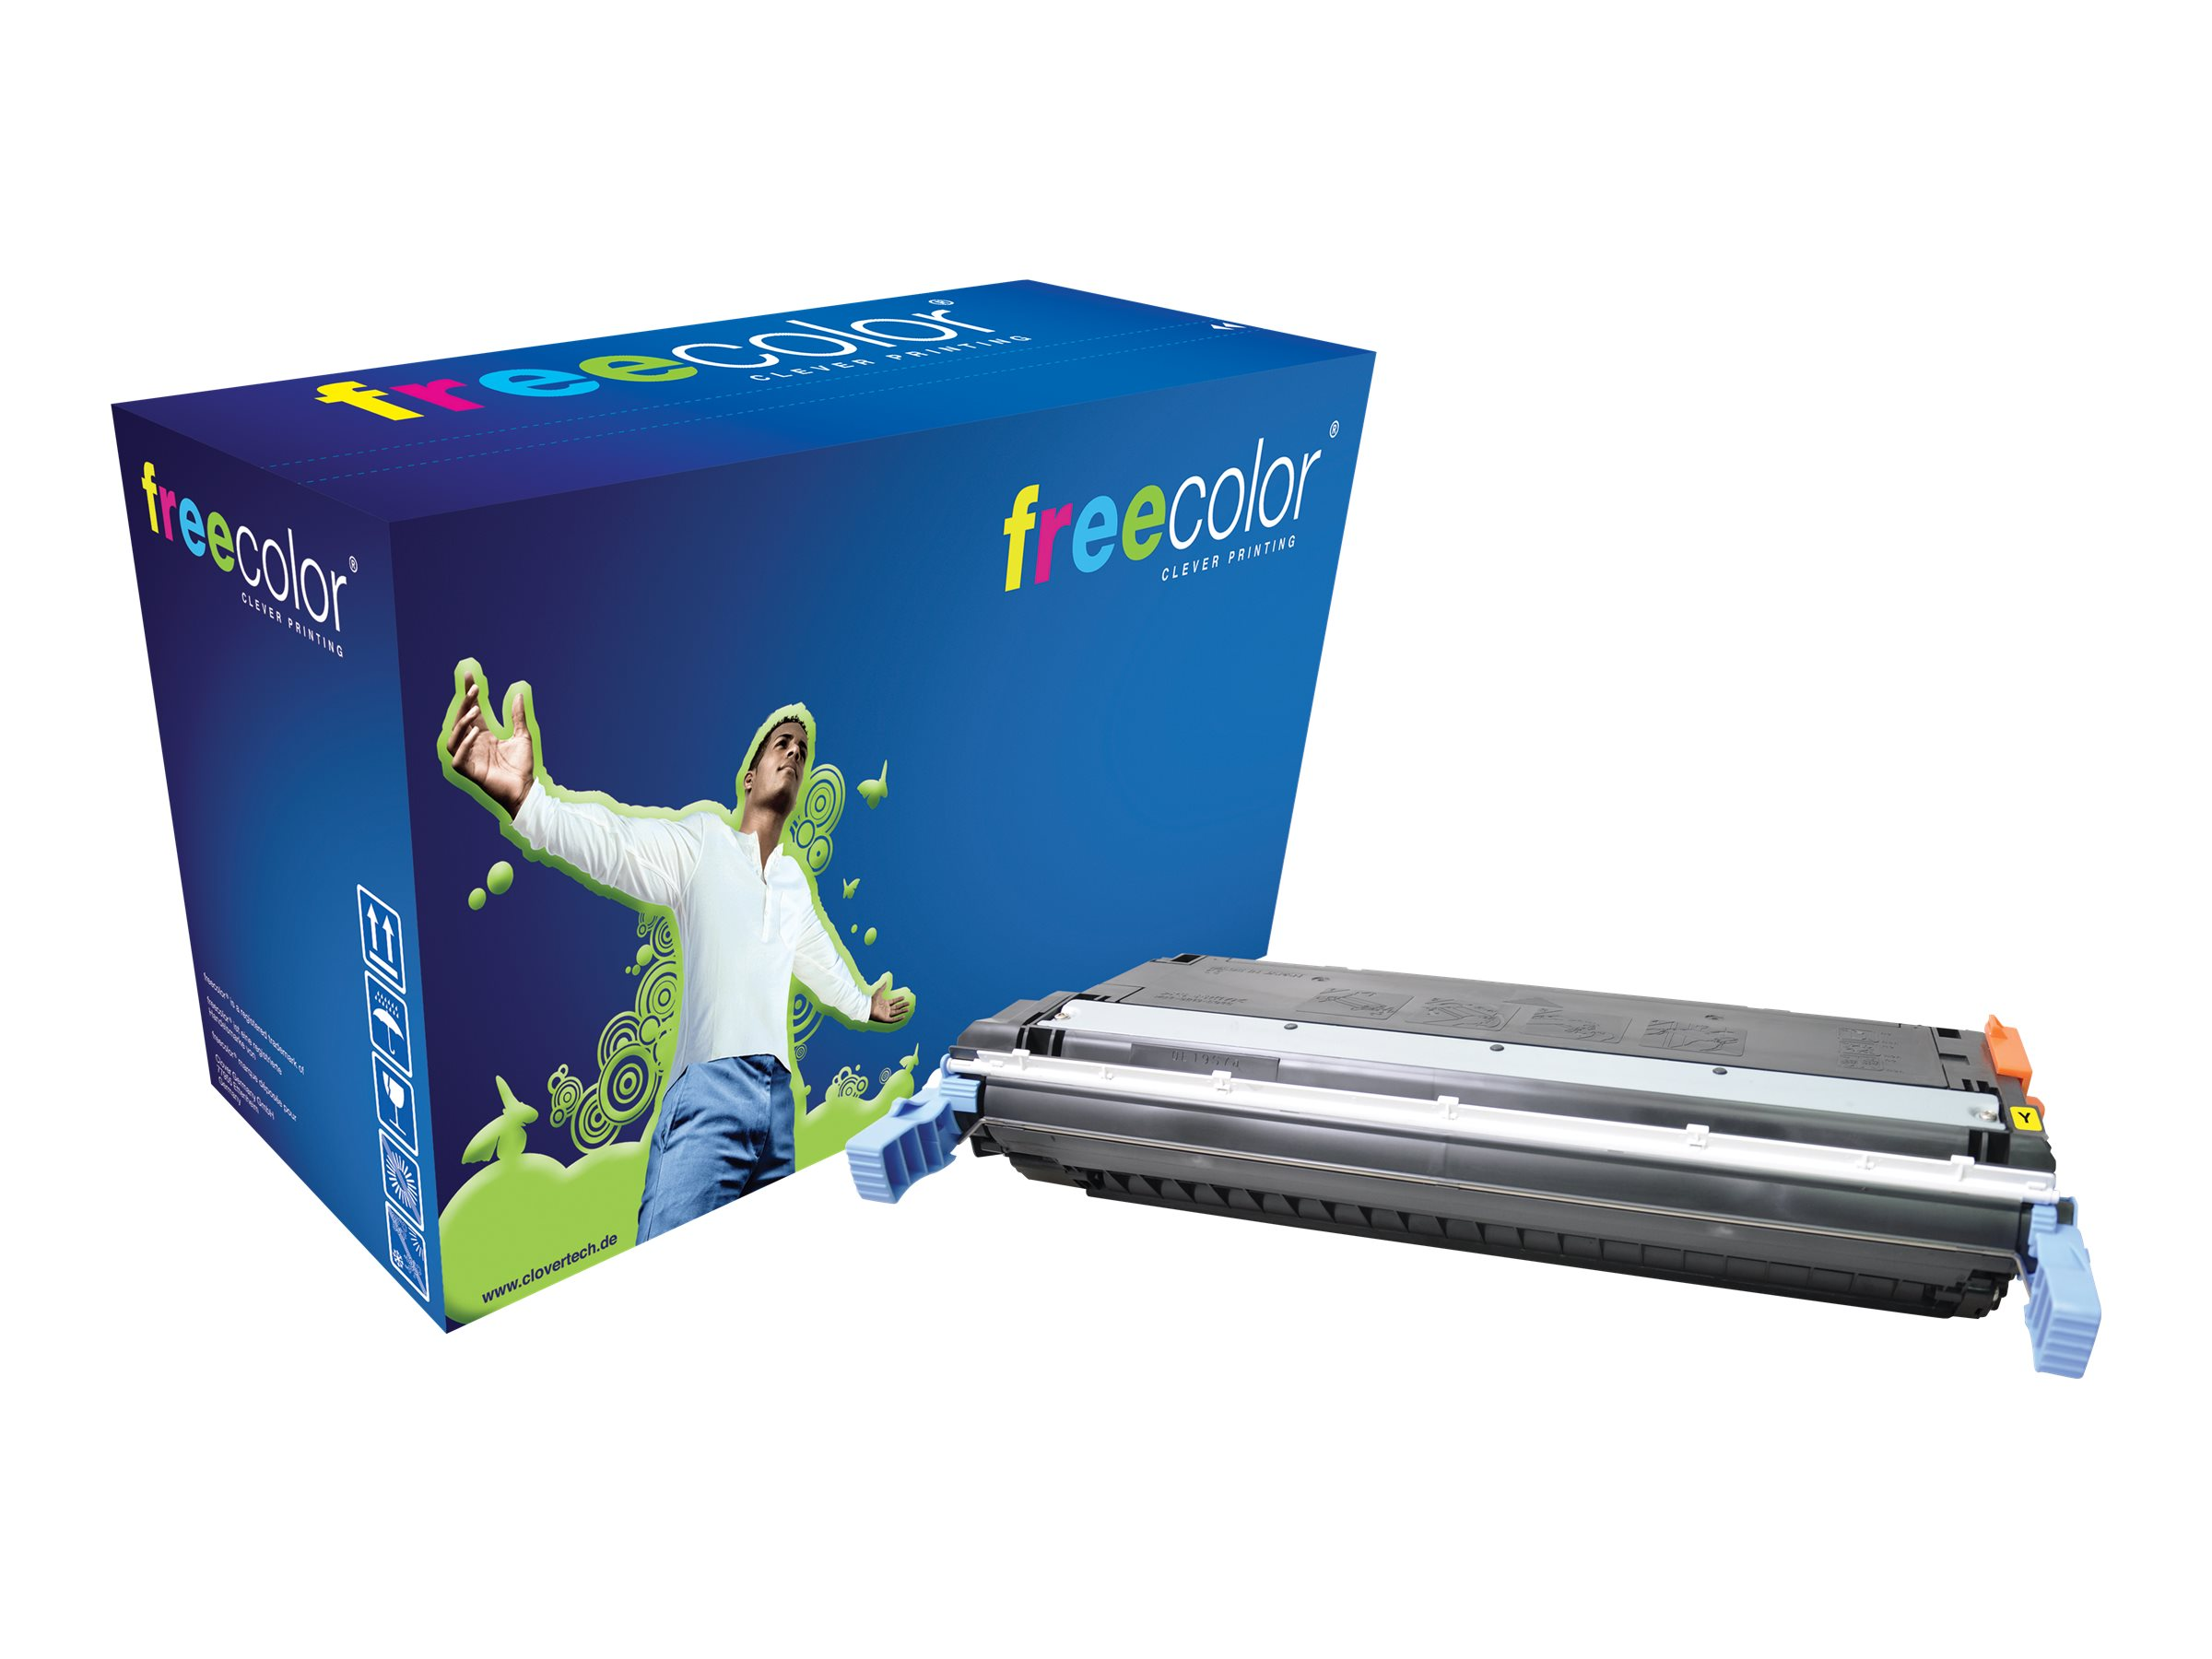 freecolor CLJ CP5525 - 340 g - Gelb - Tonerpatrone (Alternative zu: HP C9732A) - für HP Color LaserJet 5500, 5550